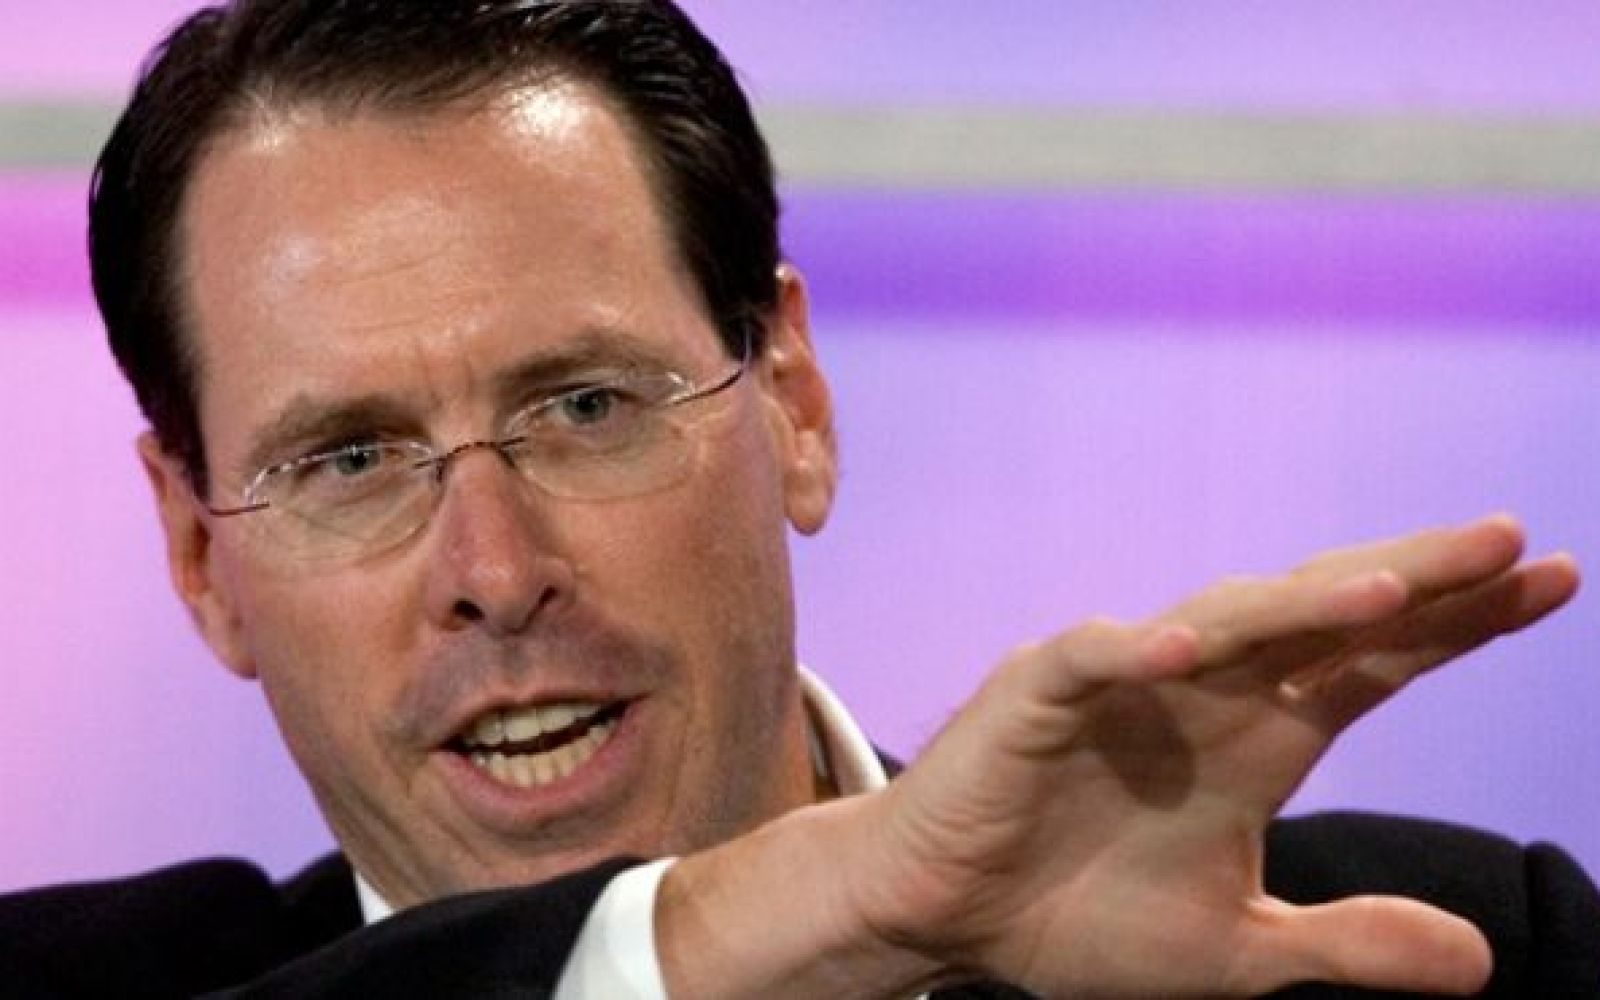 AT&T CEO admits subsidy model is at an end, proves T-Mobile's Uncarrier is the right move